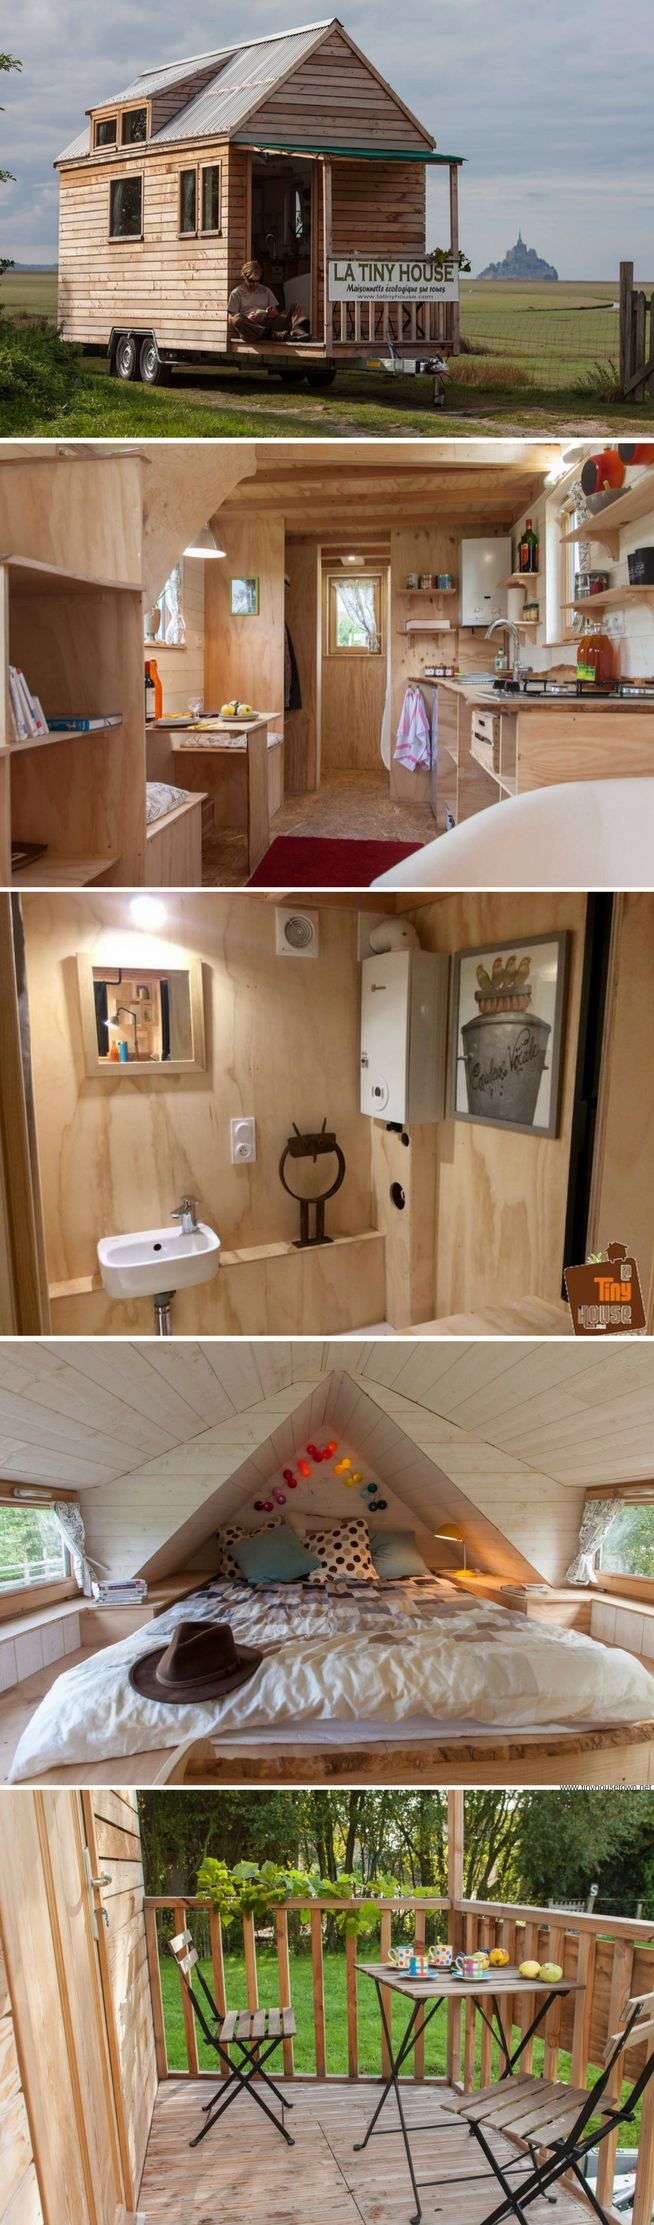 The Granville by La Tiny House